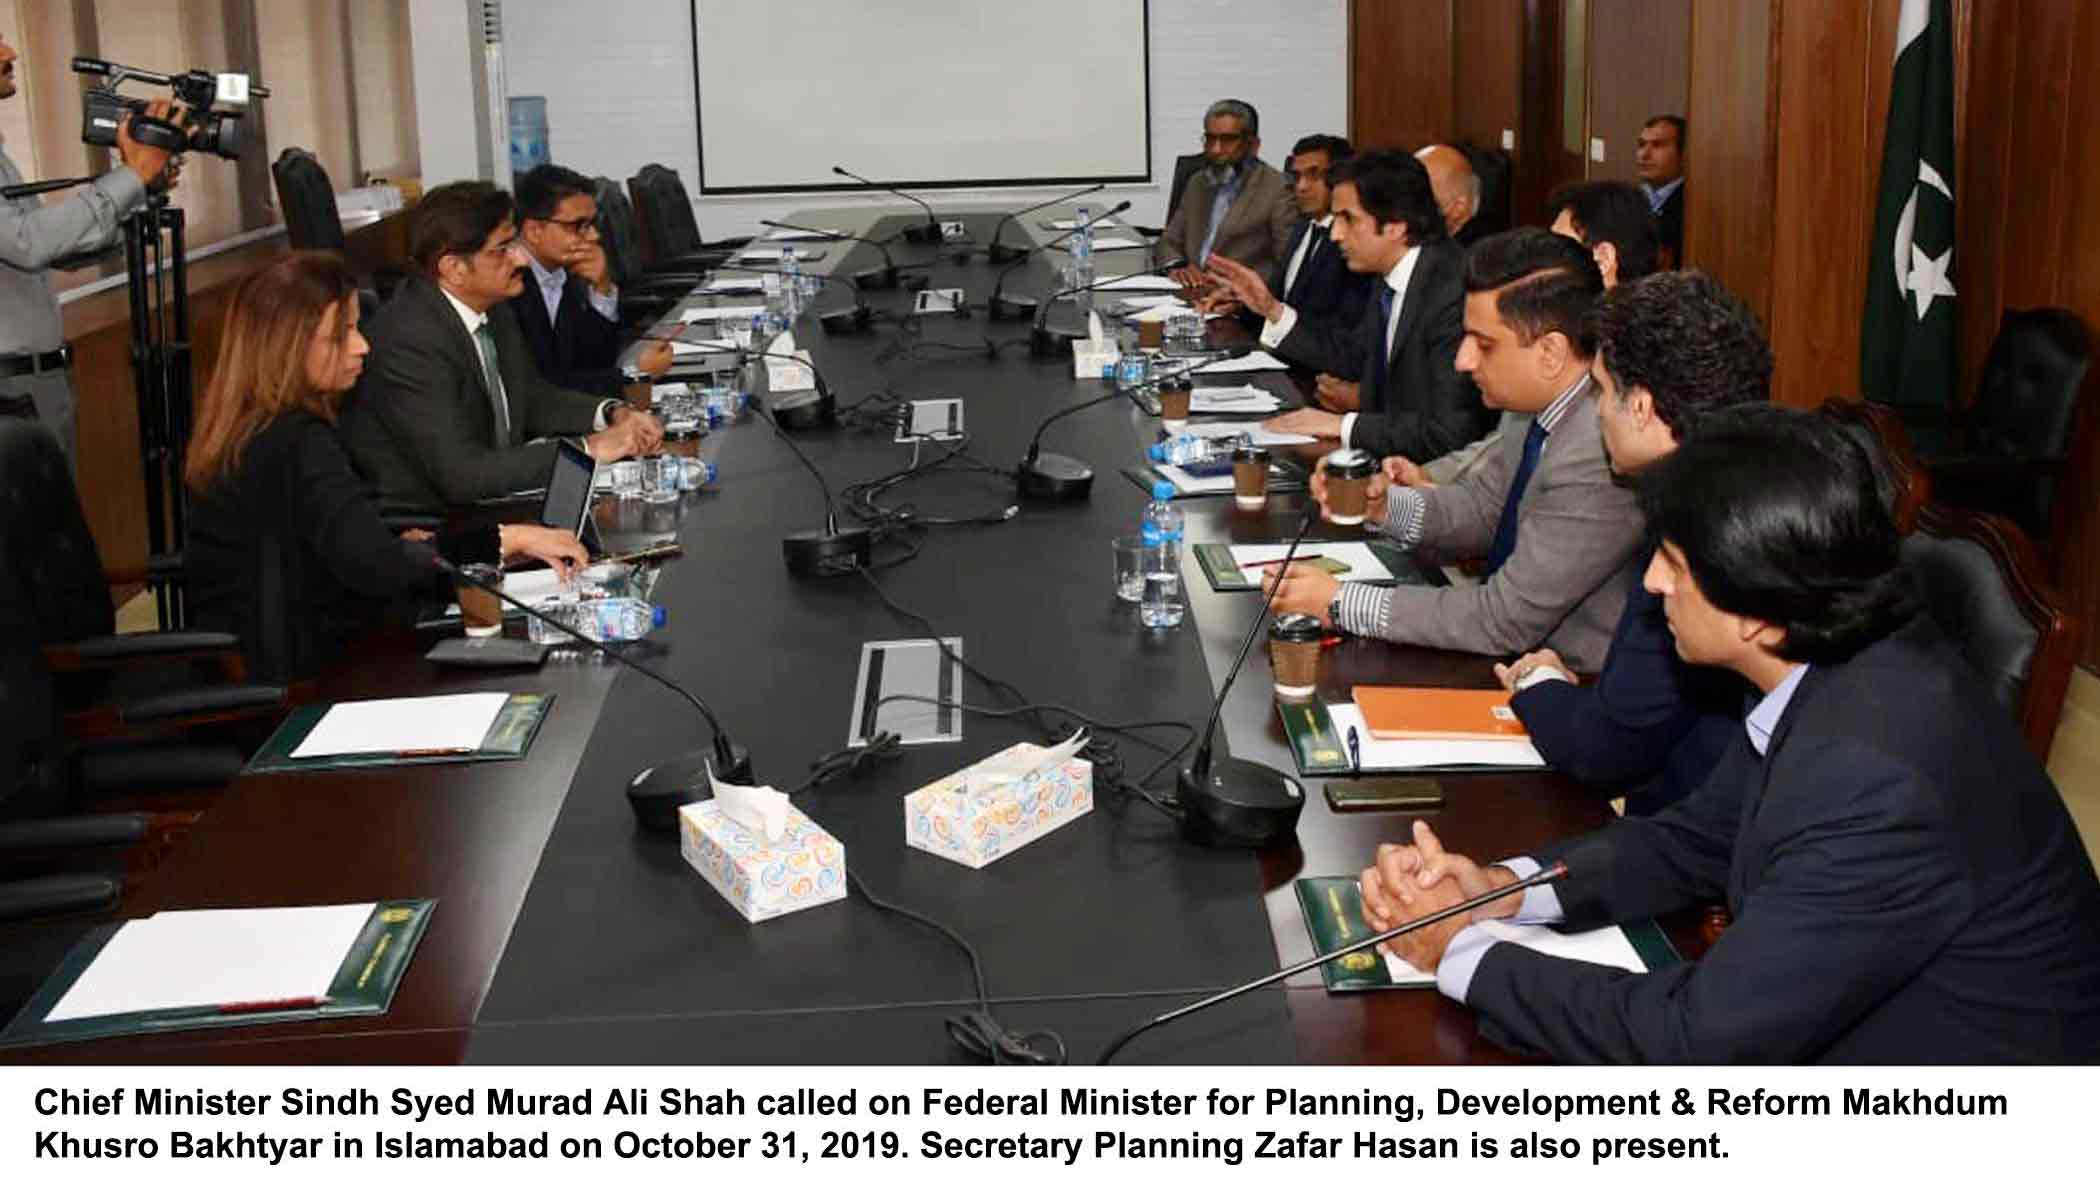 Minister PD&R meeting with Chief Minister Sindh on CPEC projects on 31 October 2019